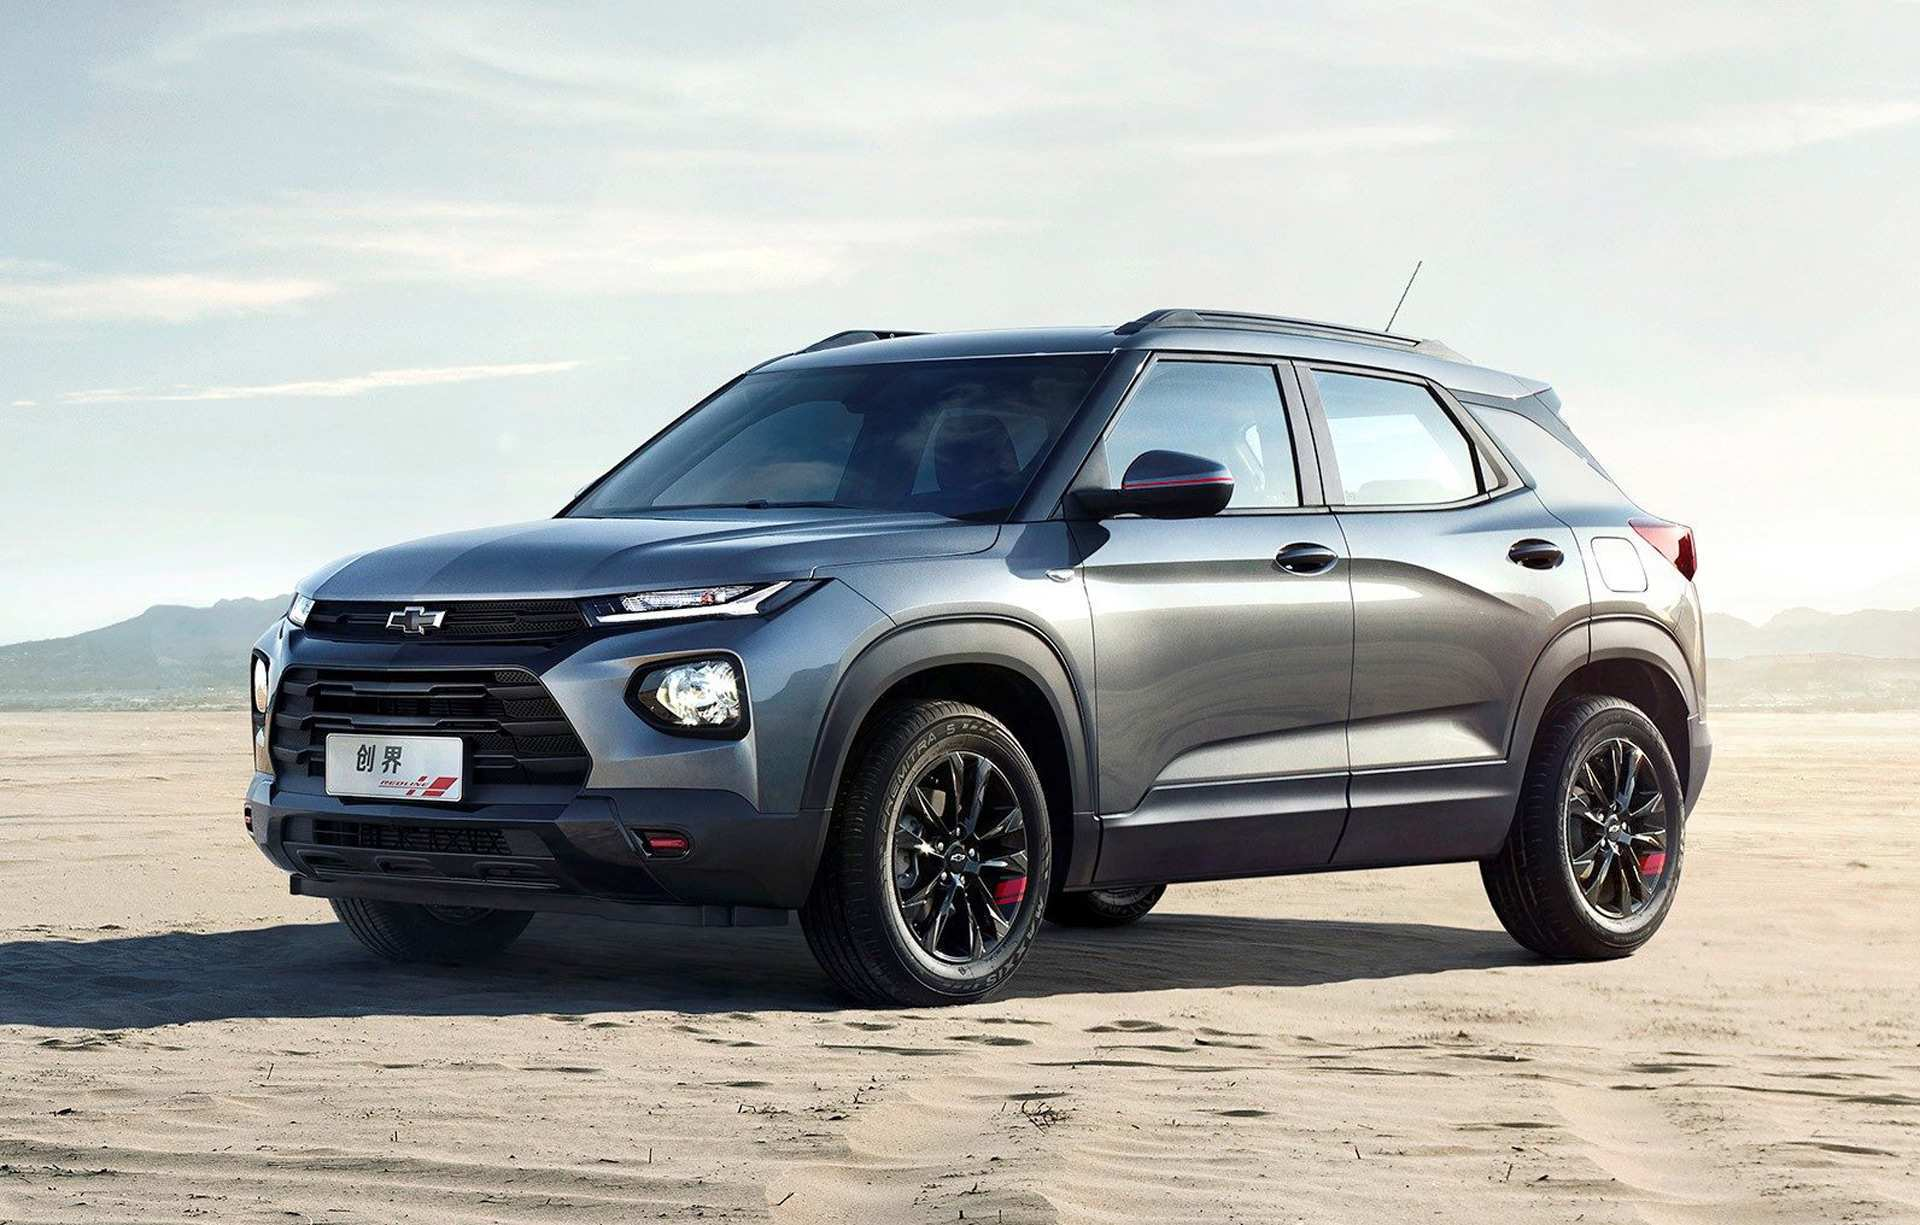 98 The 2020 Chevy Trailblazer Concept